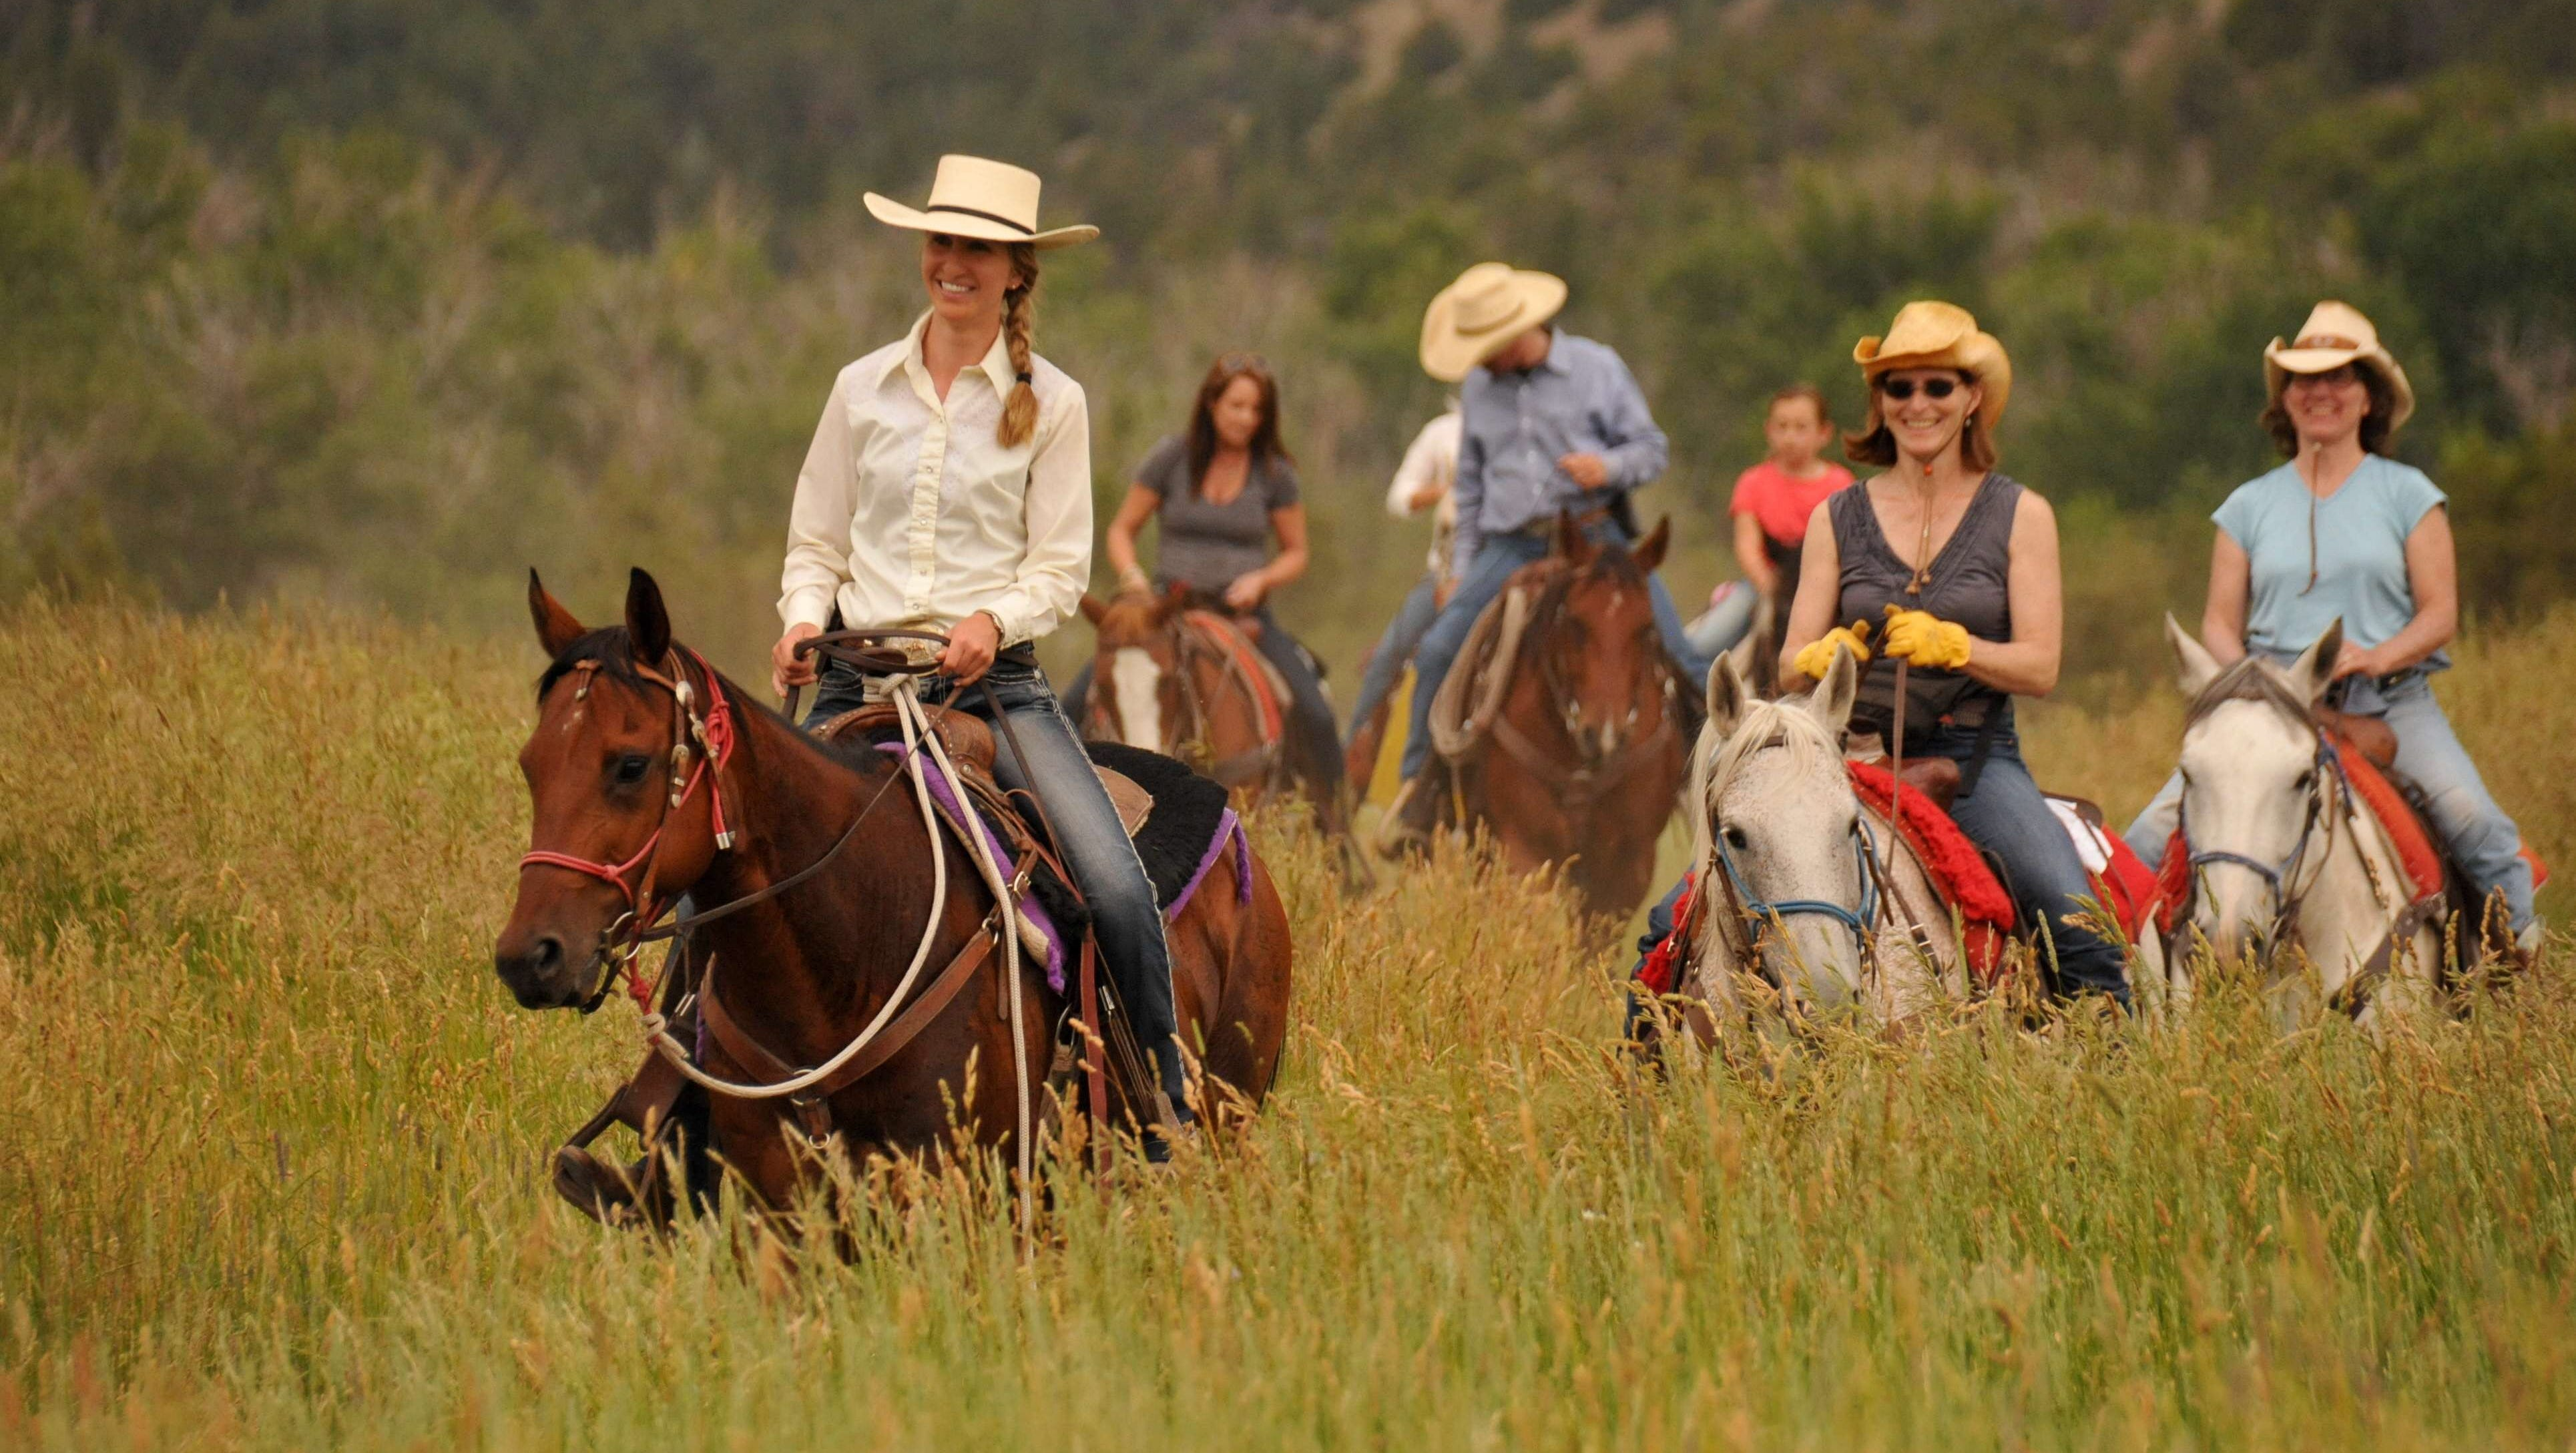 Guests at Mountain Sky Guest Ranch, an upscale 8,000-acre Paradise Valley property in Emigrant, Mont., can go horseback riding through sage and pine trees.